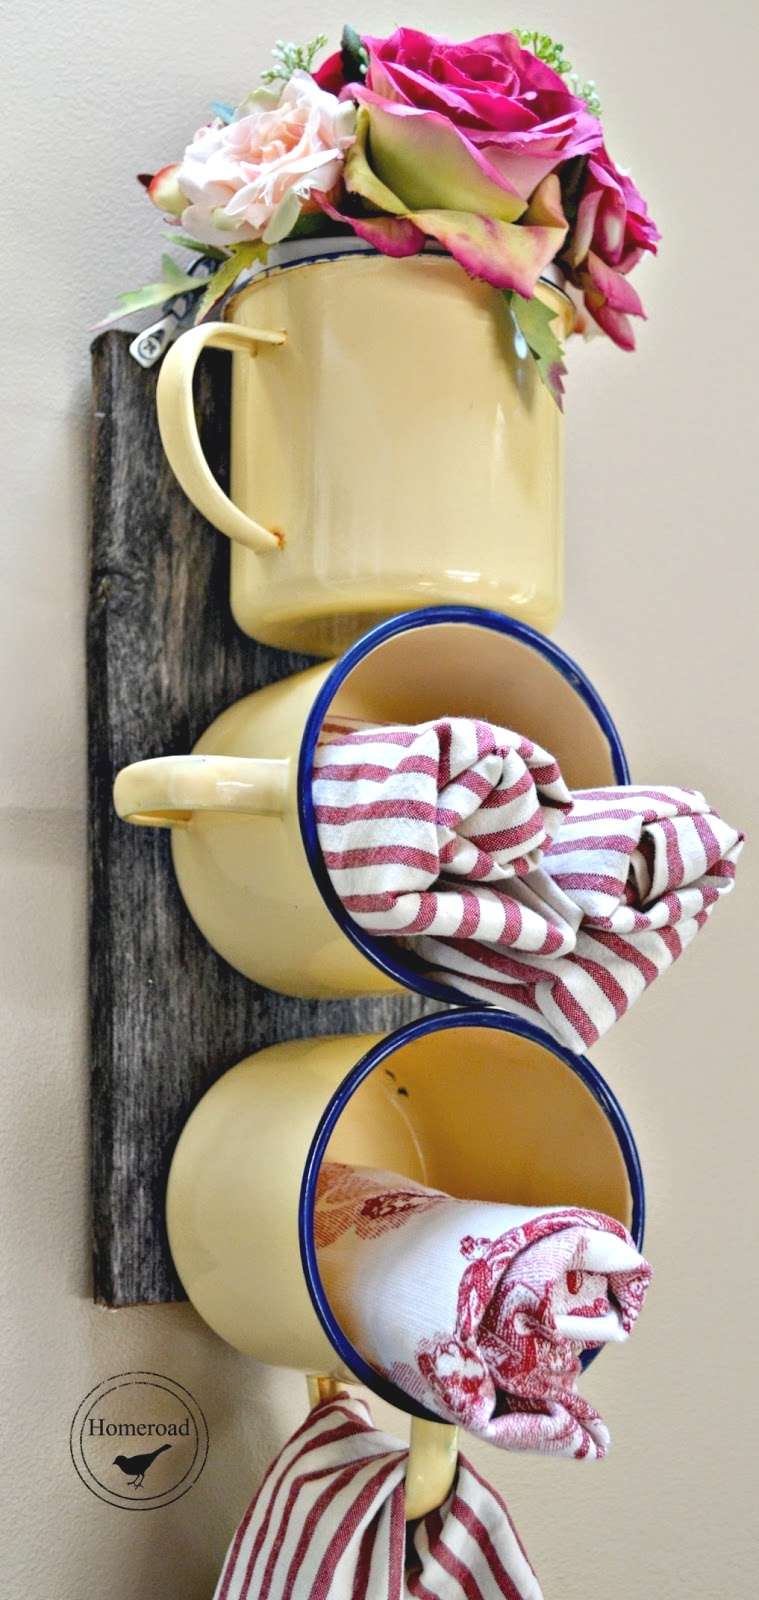 Farmhouse Wall Mounted Enamel Mug Organizer